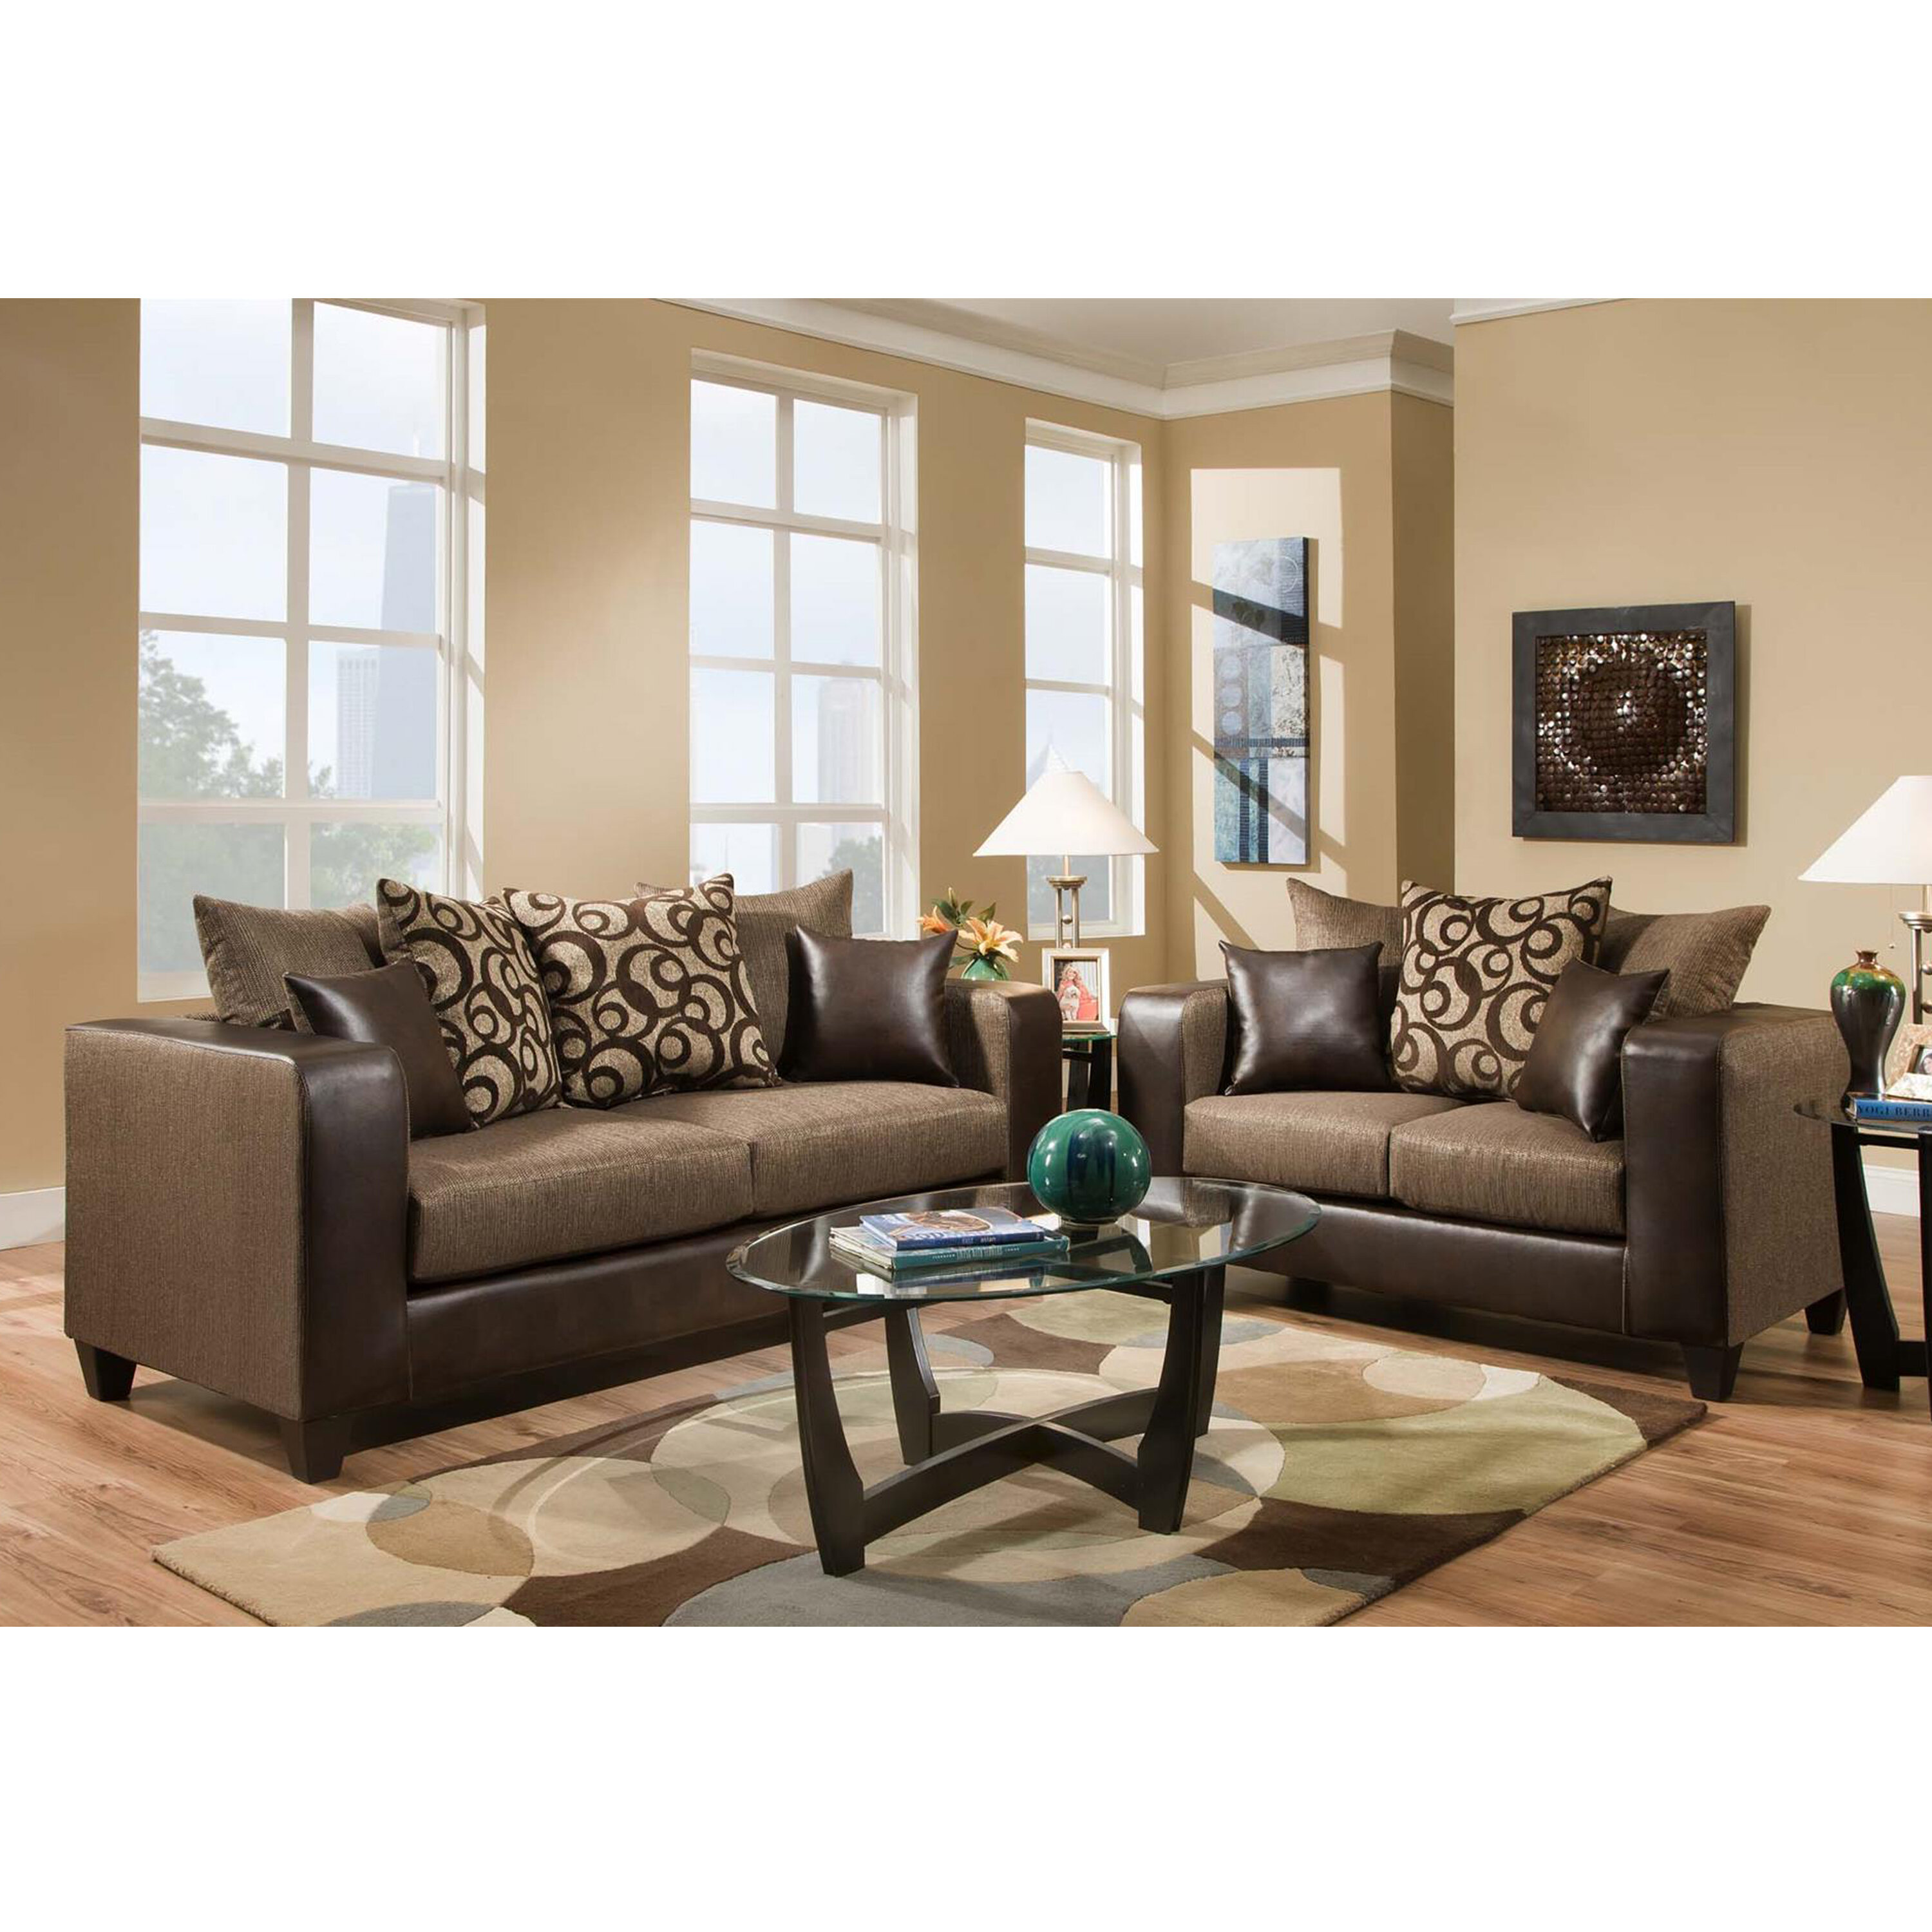 pride also modern elephants sofa set loving stunning furniture ideas bonded us living room leather brilliant piece two of